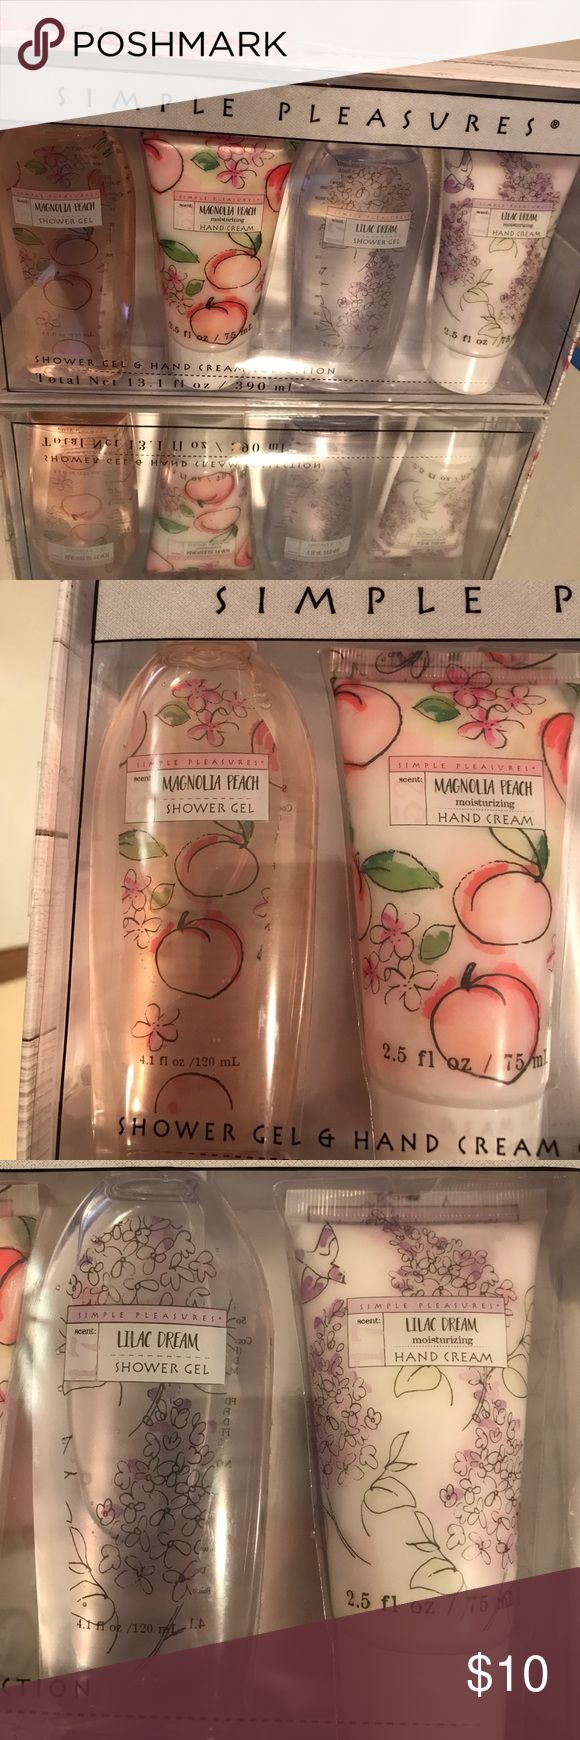 Simple Pleasures Shower Gel & Hand Cream Simple Pleasures shower gel and hand cream in magnolia peach and lilac dream! Never been used! Hand creams still have seals on them! Hand creams are 2.5 ounce and shower gels are 4.5 ounces! simple pleasures Other